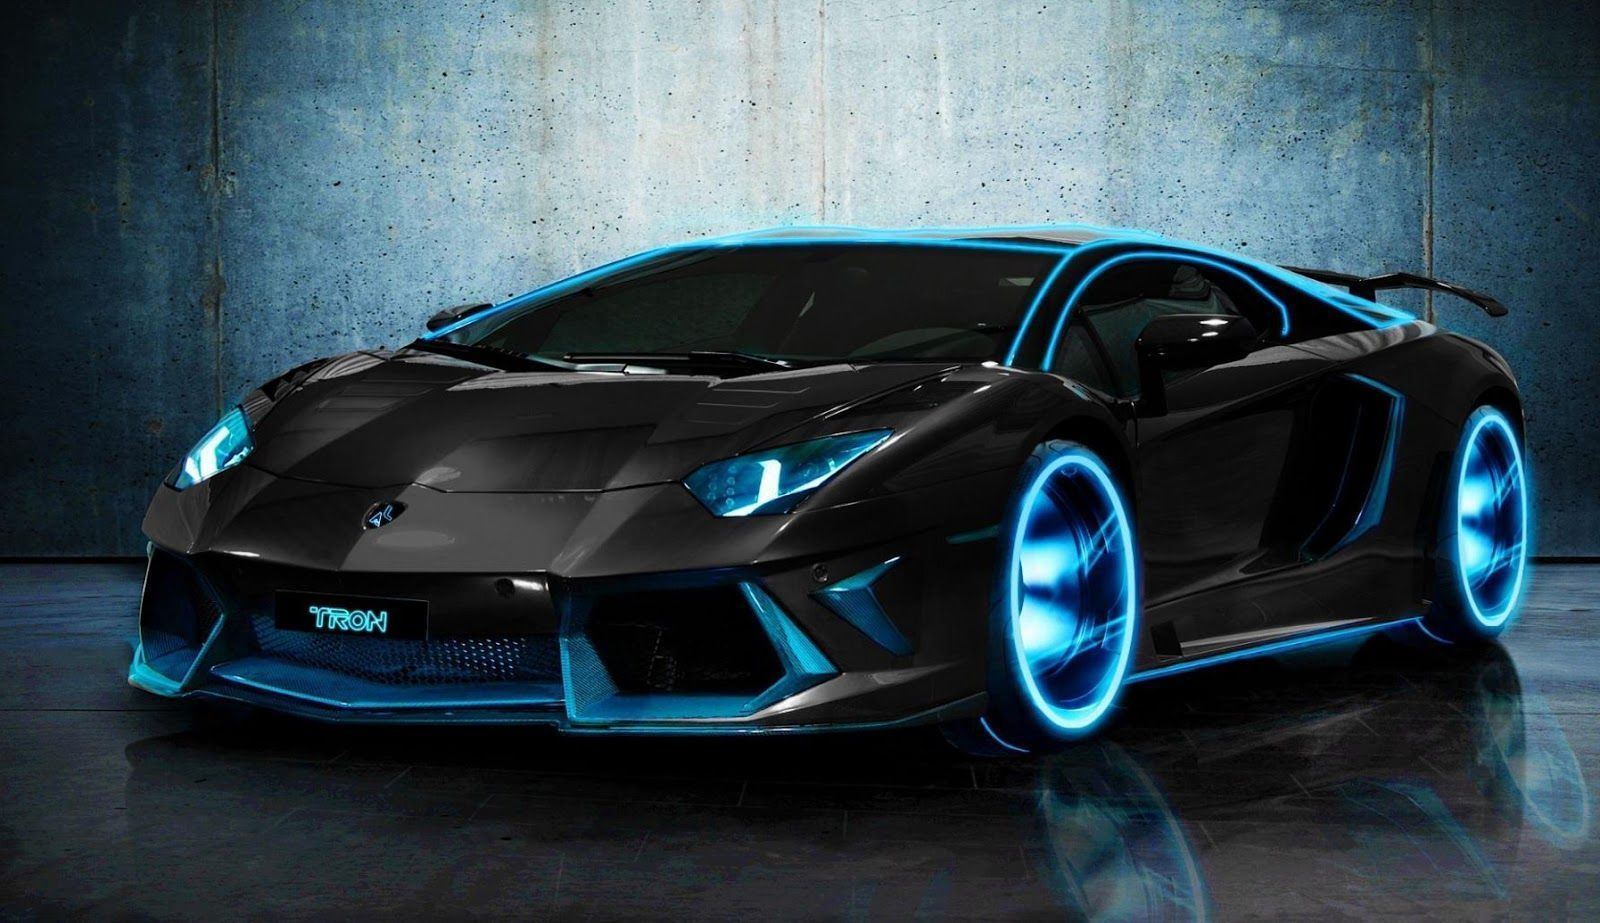 2015 New Sports Cars Wallpaper In 2020 Lamborghini Aventador Wallpaper Sports Car Wallpaper Lamborghini Cars